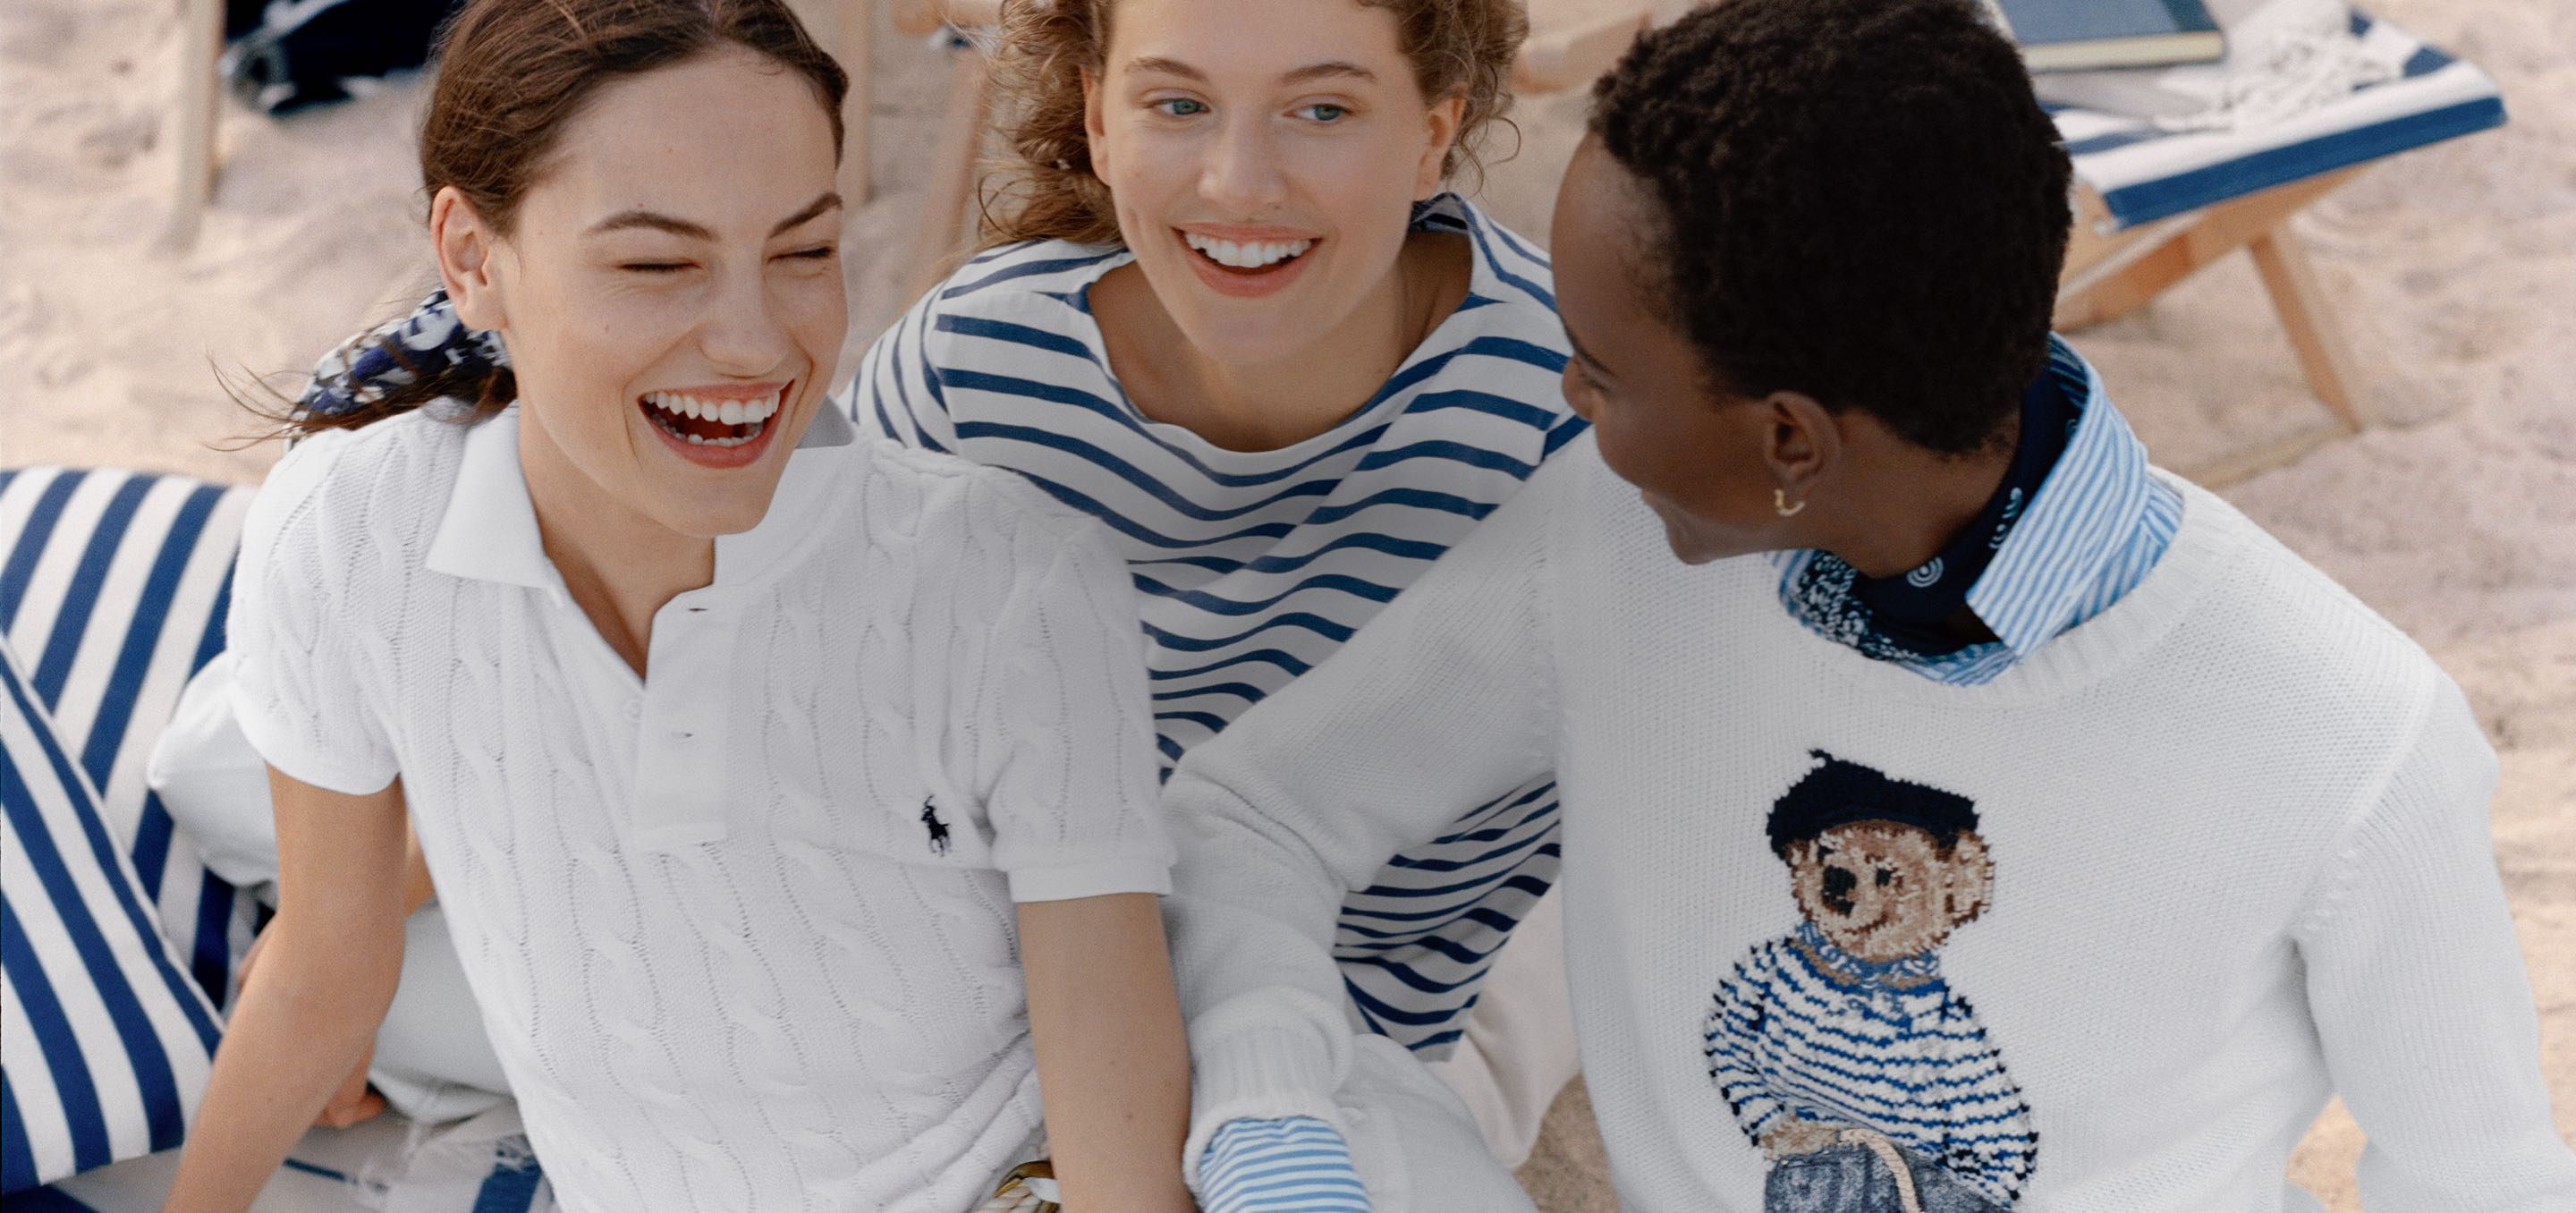 Three women on beach in classic Polo styles